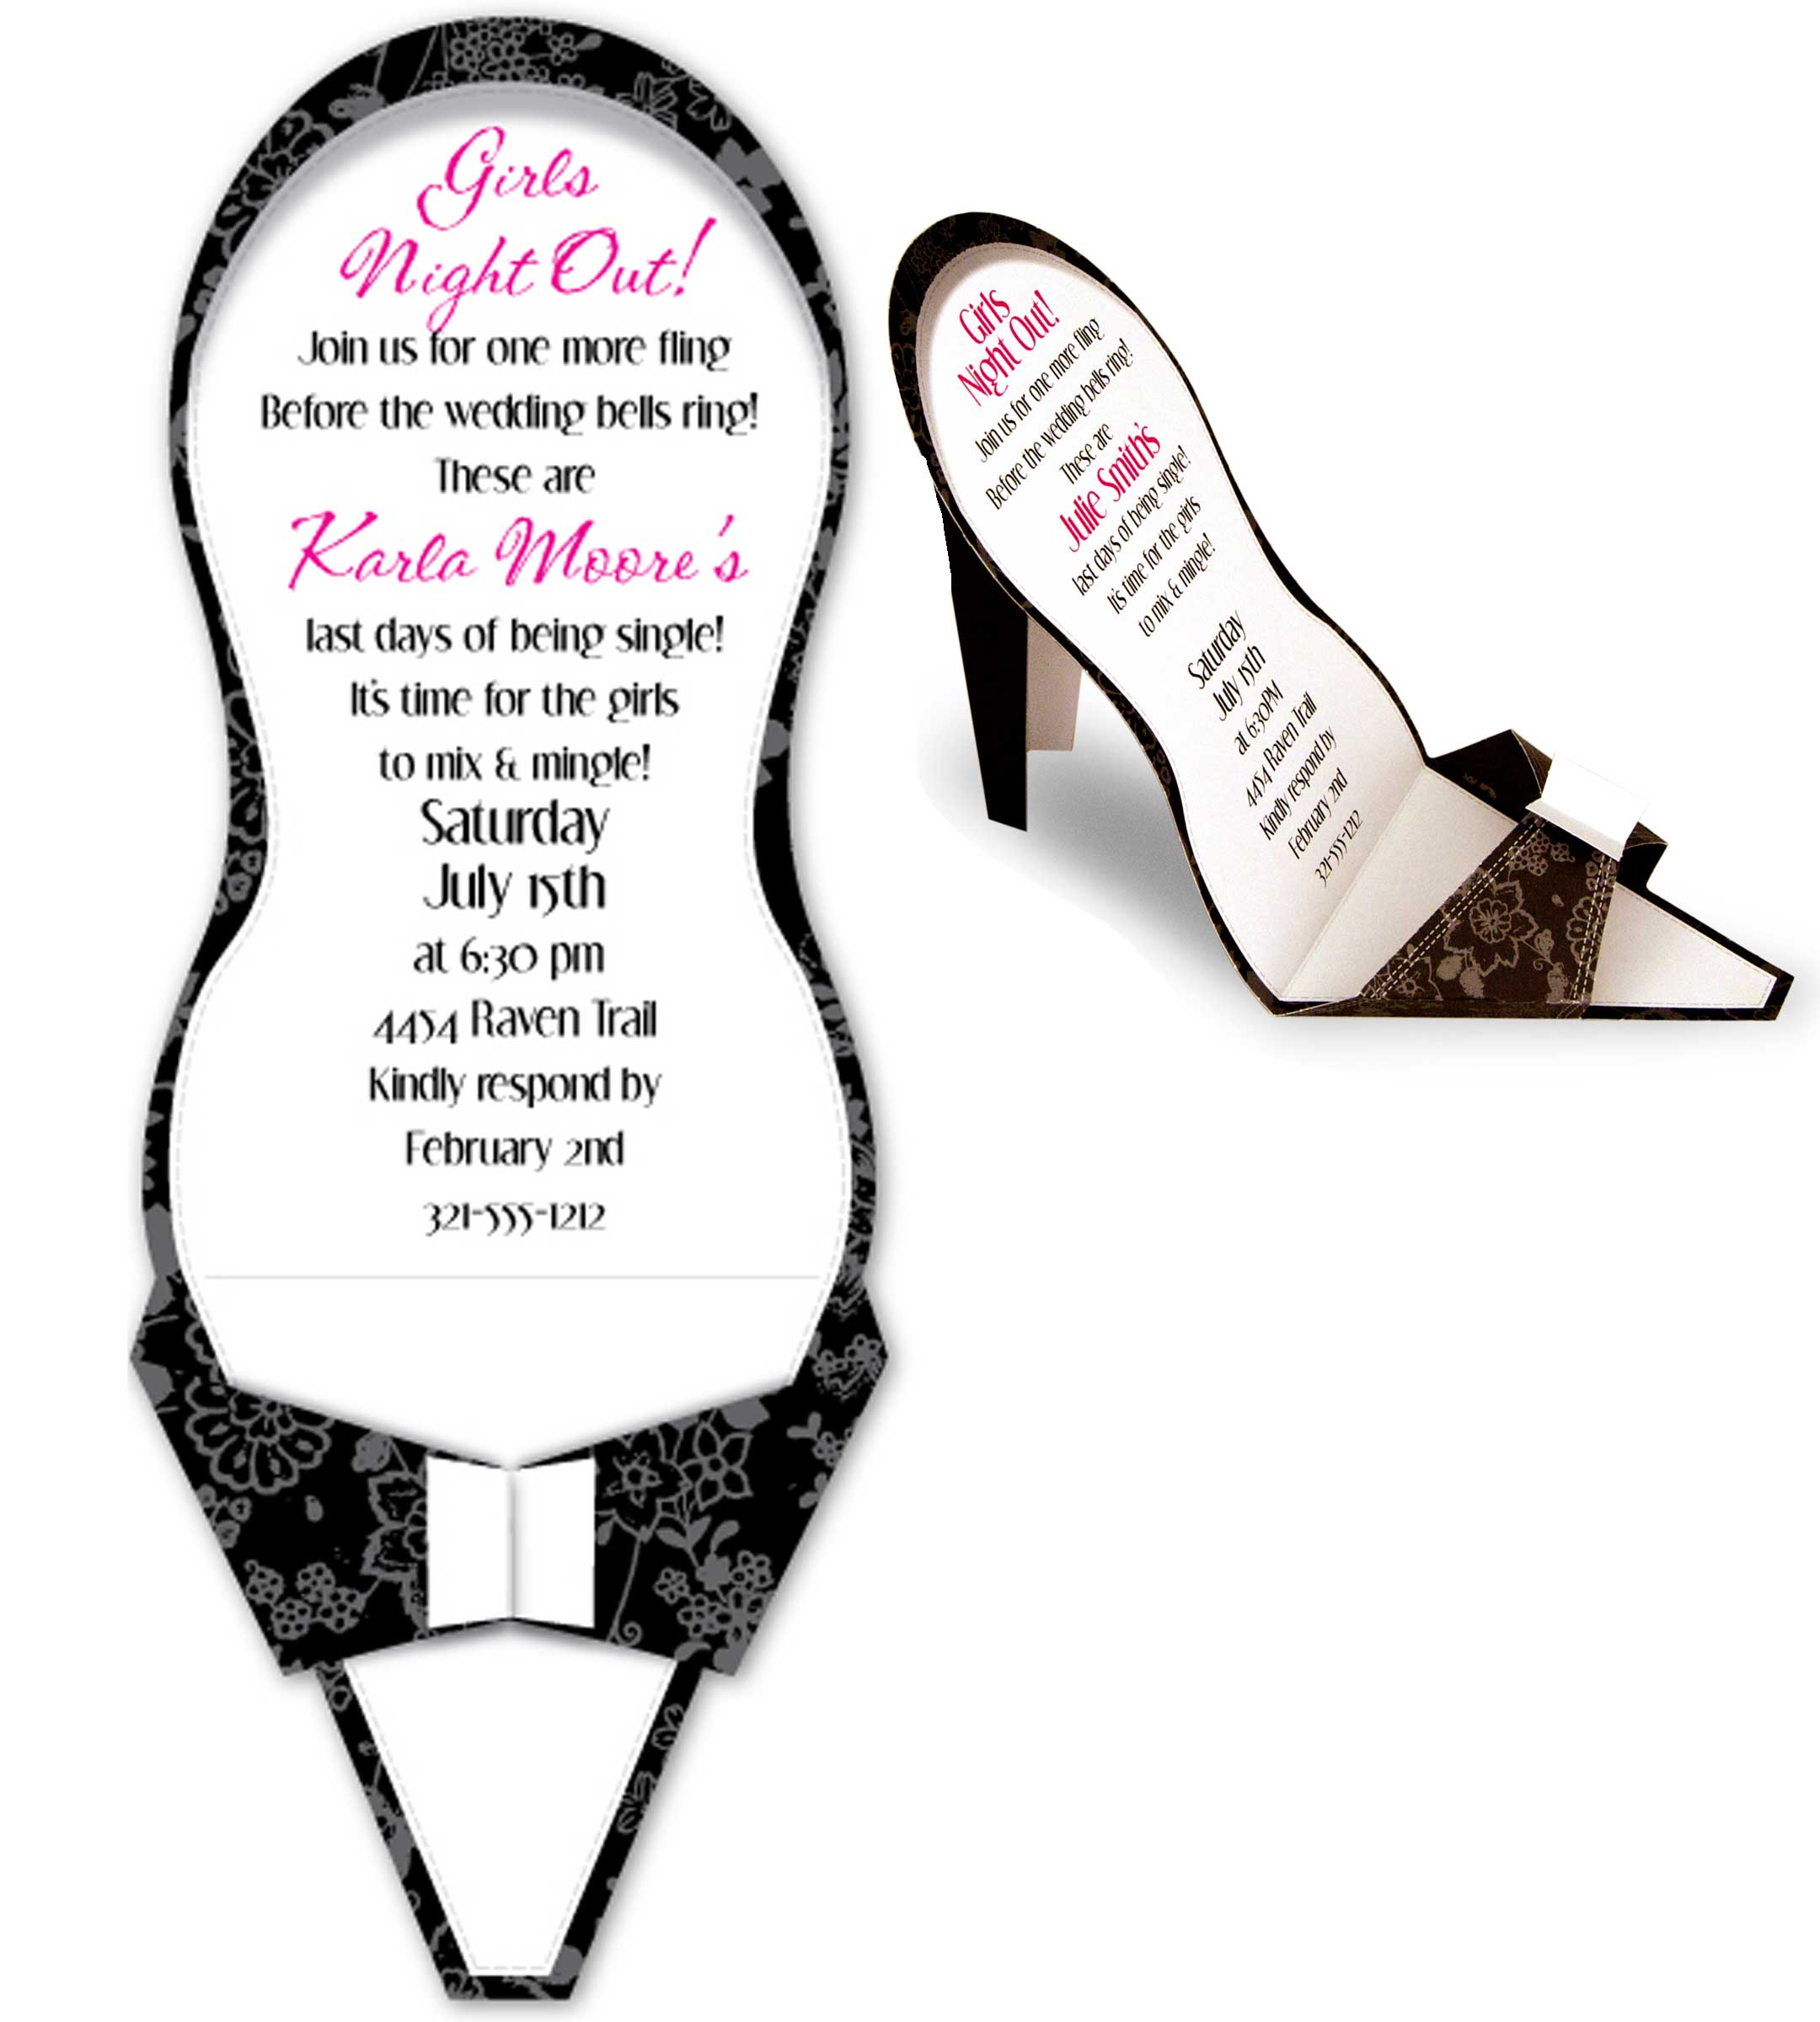 Black High Heel - A Unique and fun invitation for any Ladies Gathering!  This invitation is a die-cut invitation, when slipped from the envelope it folds to a standing high heeled shoe.  This high heel is decorated with a fun black and gray floral print and has a white area for printing. This makes a one of a kind bridal shower announcement or girls night out invitation.  Includes white envelope.